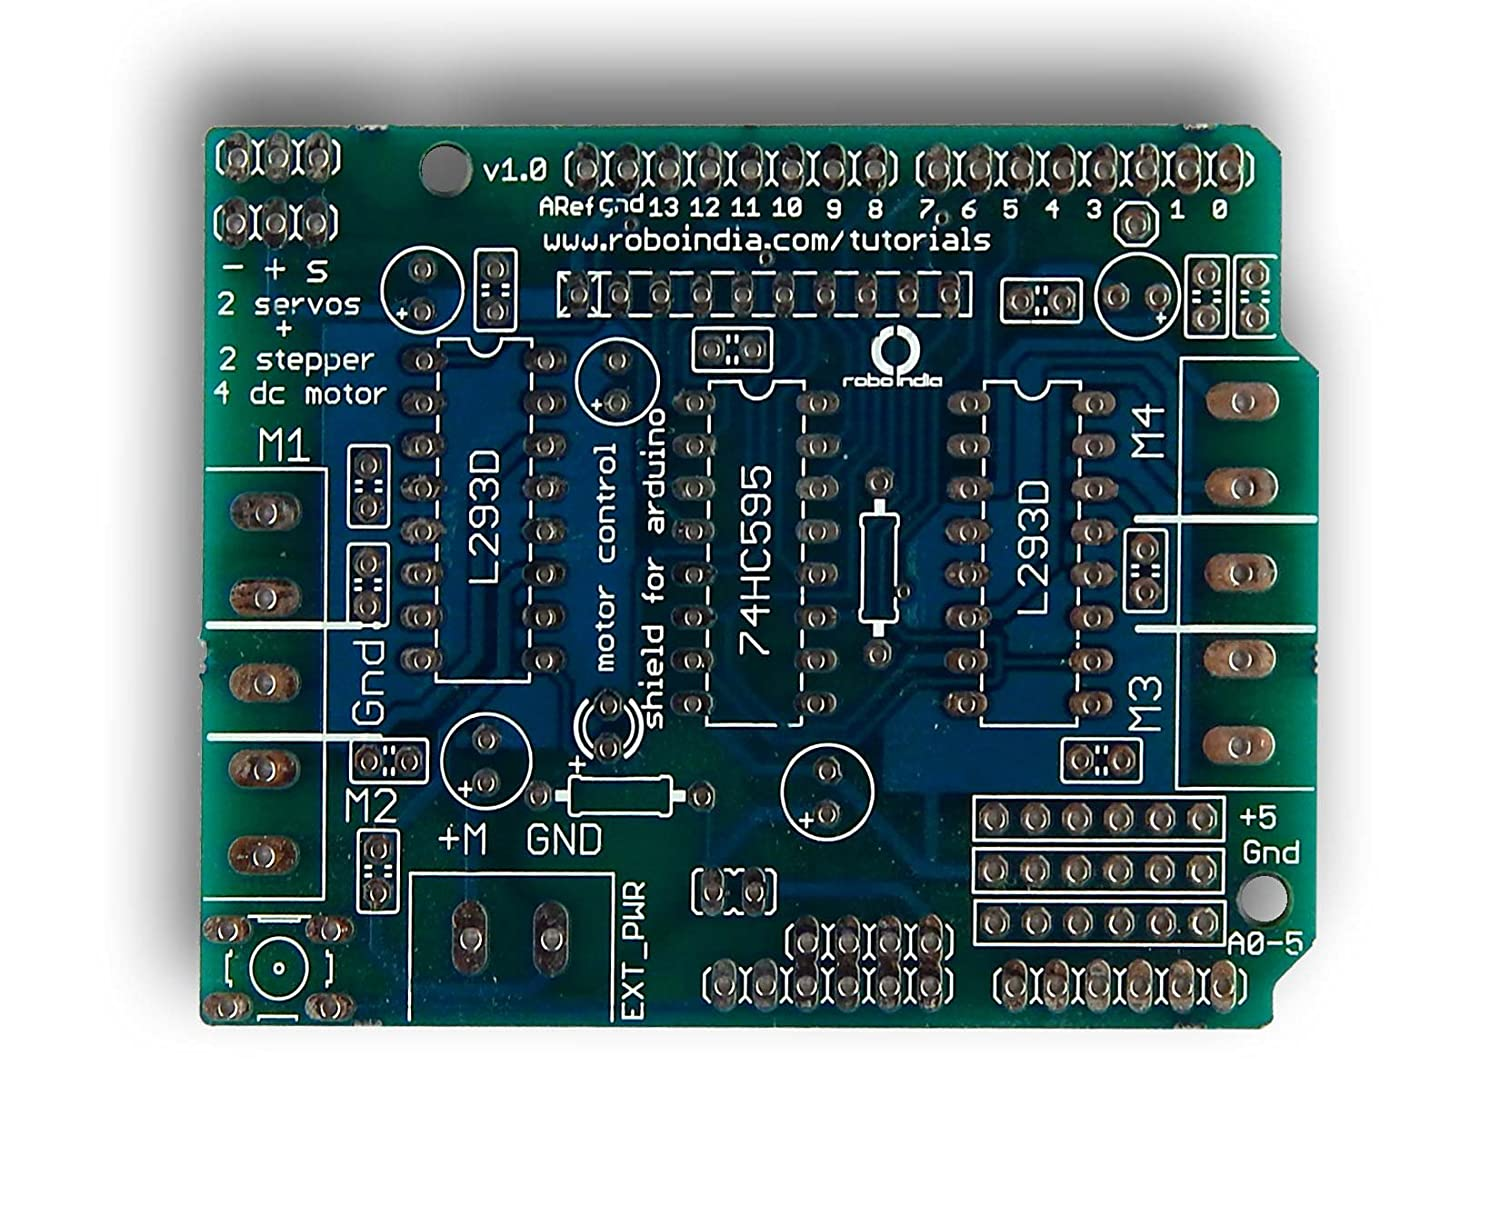 Robo India M S Shield Arduino Motor Driver For Geared Dc Bridge Circuit Bidirectional Control Stepper Servo User Manual Industrial Scientific